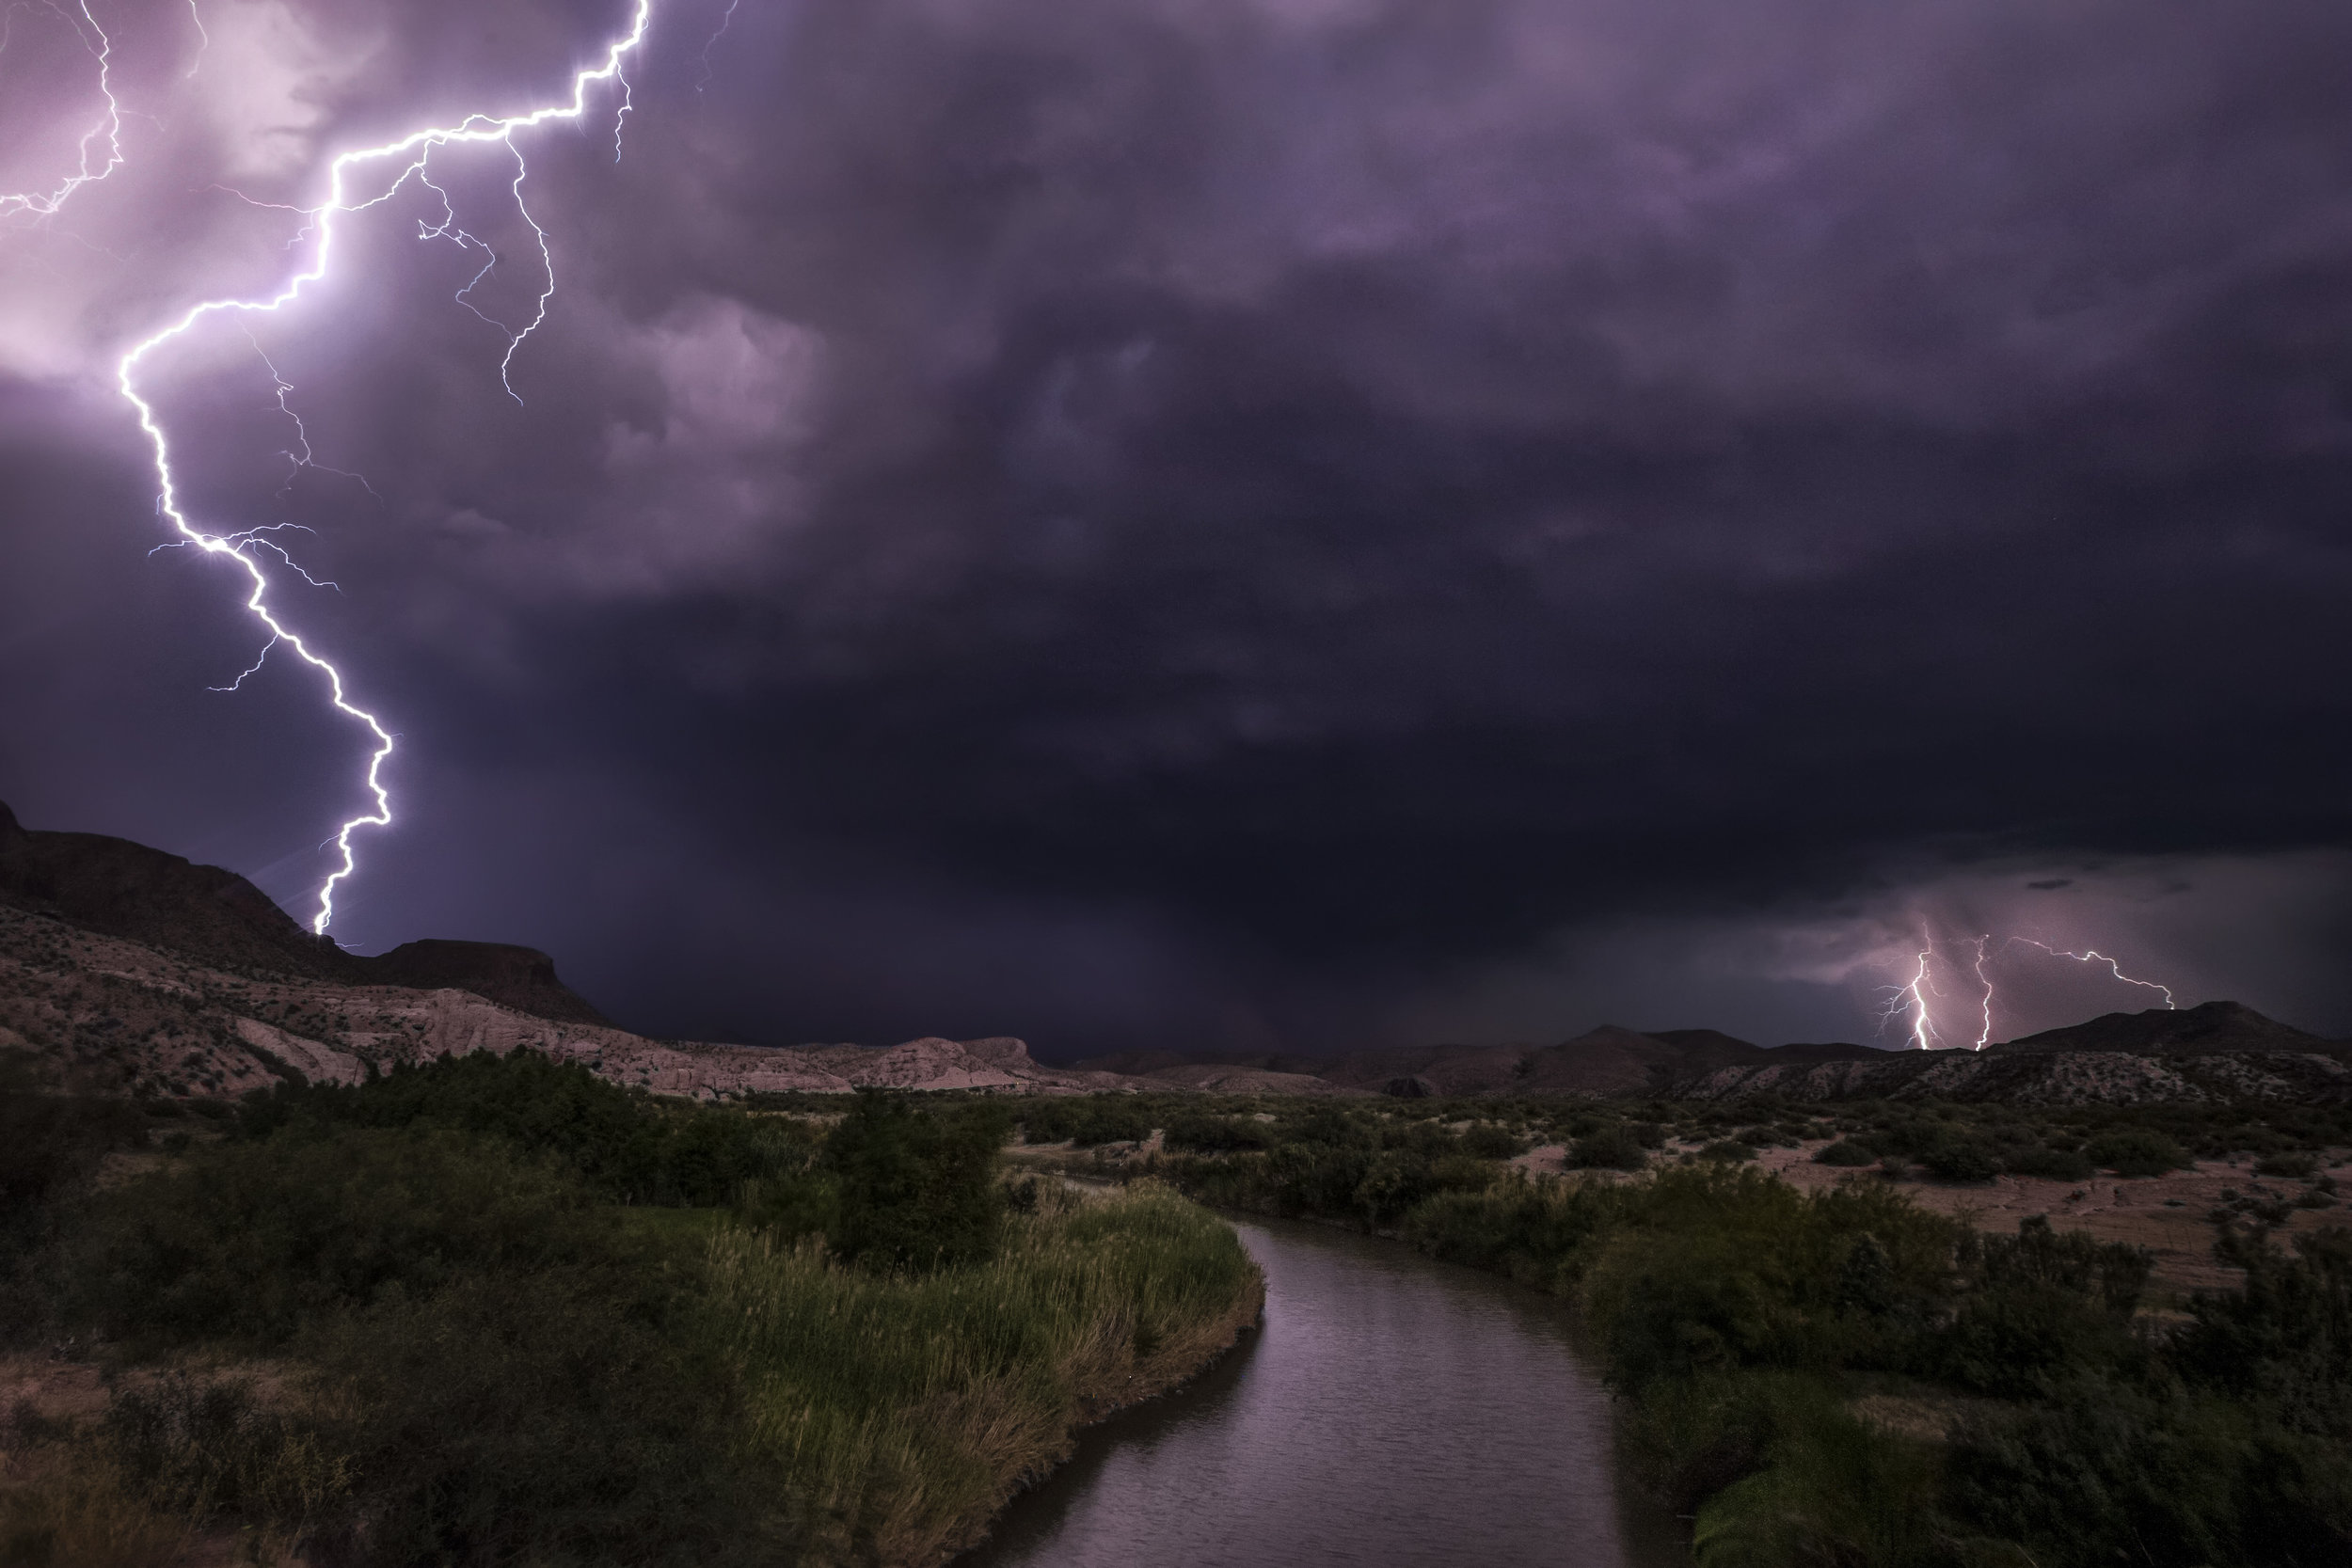 Cloud to Ground Lightning - US-Mexico Border  June 24, 2017.jpg